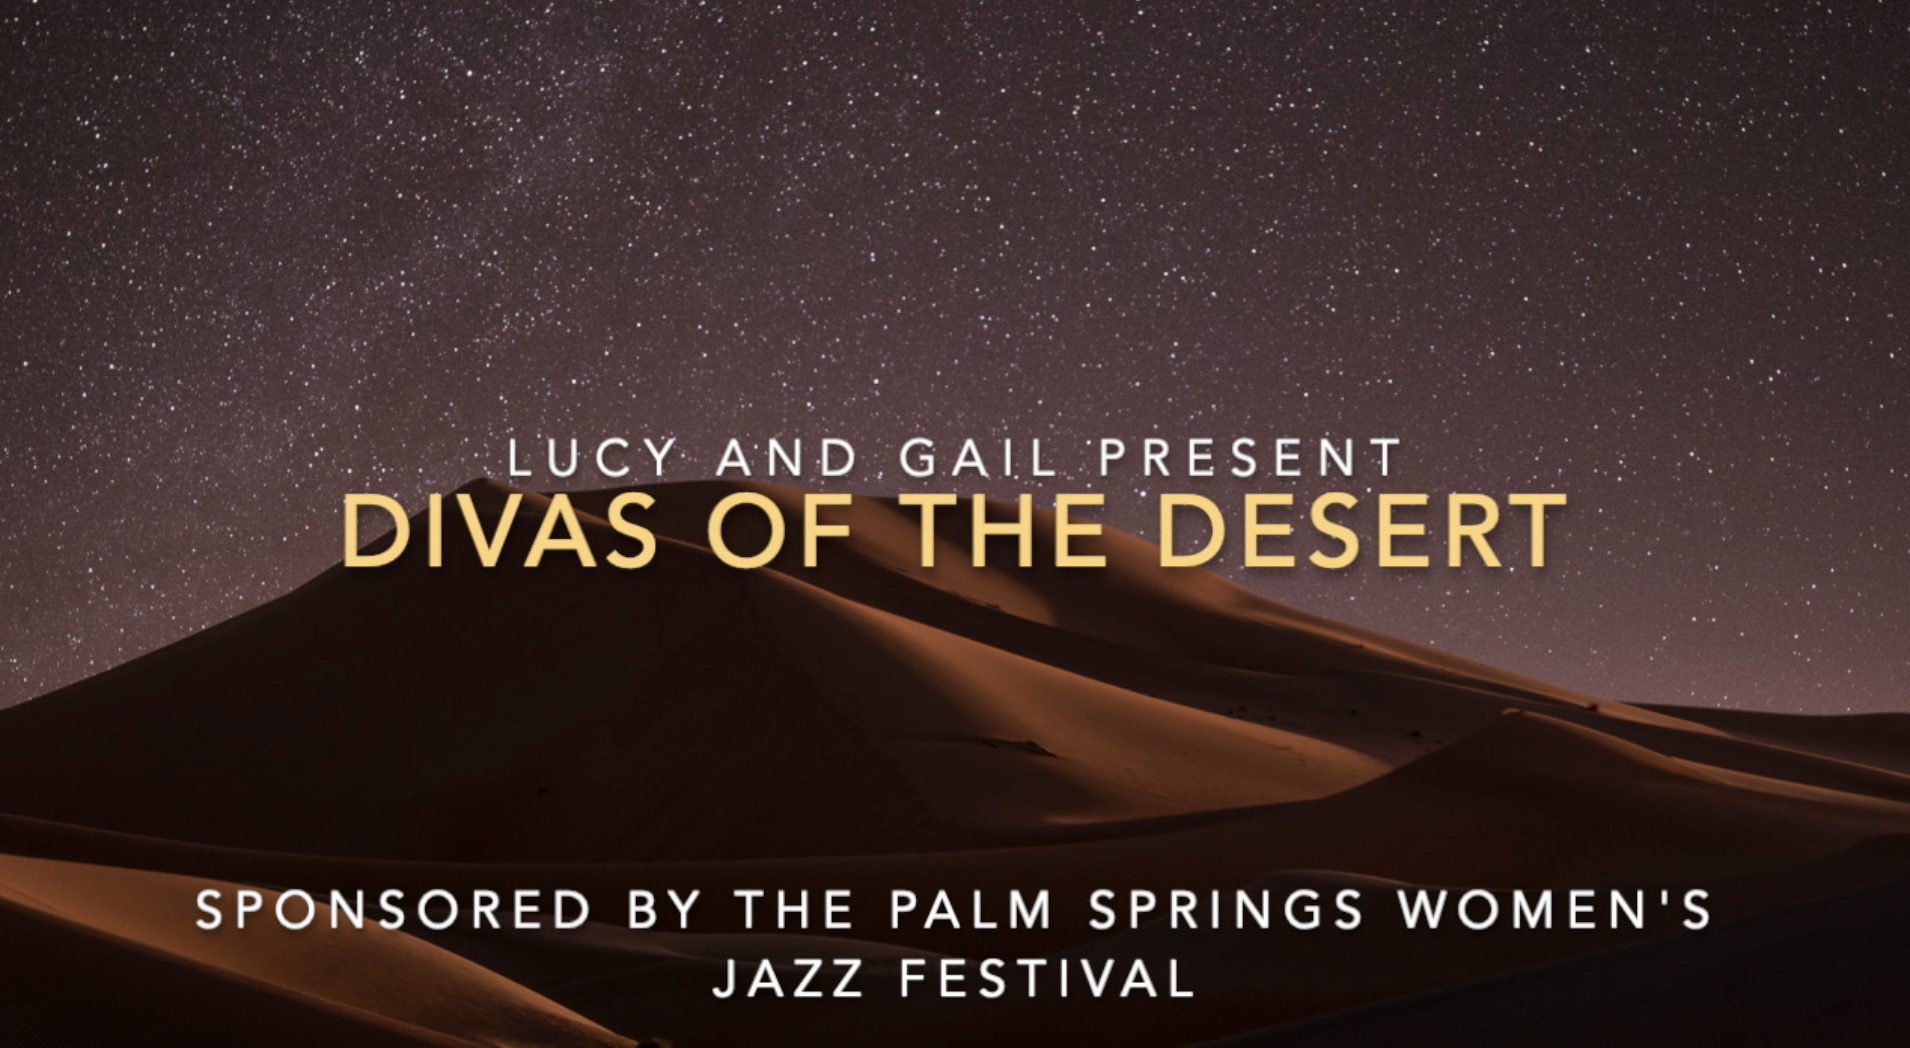 Divas of the Desert